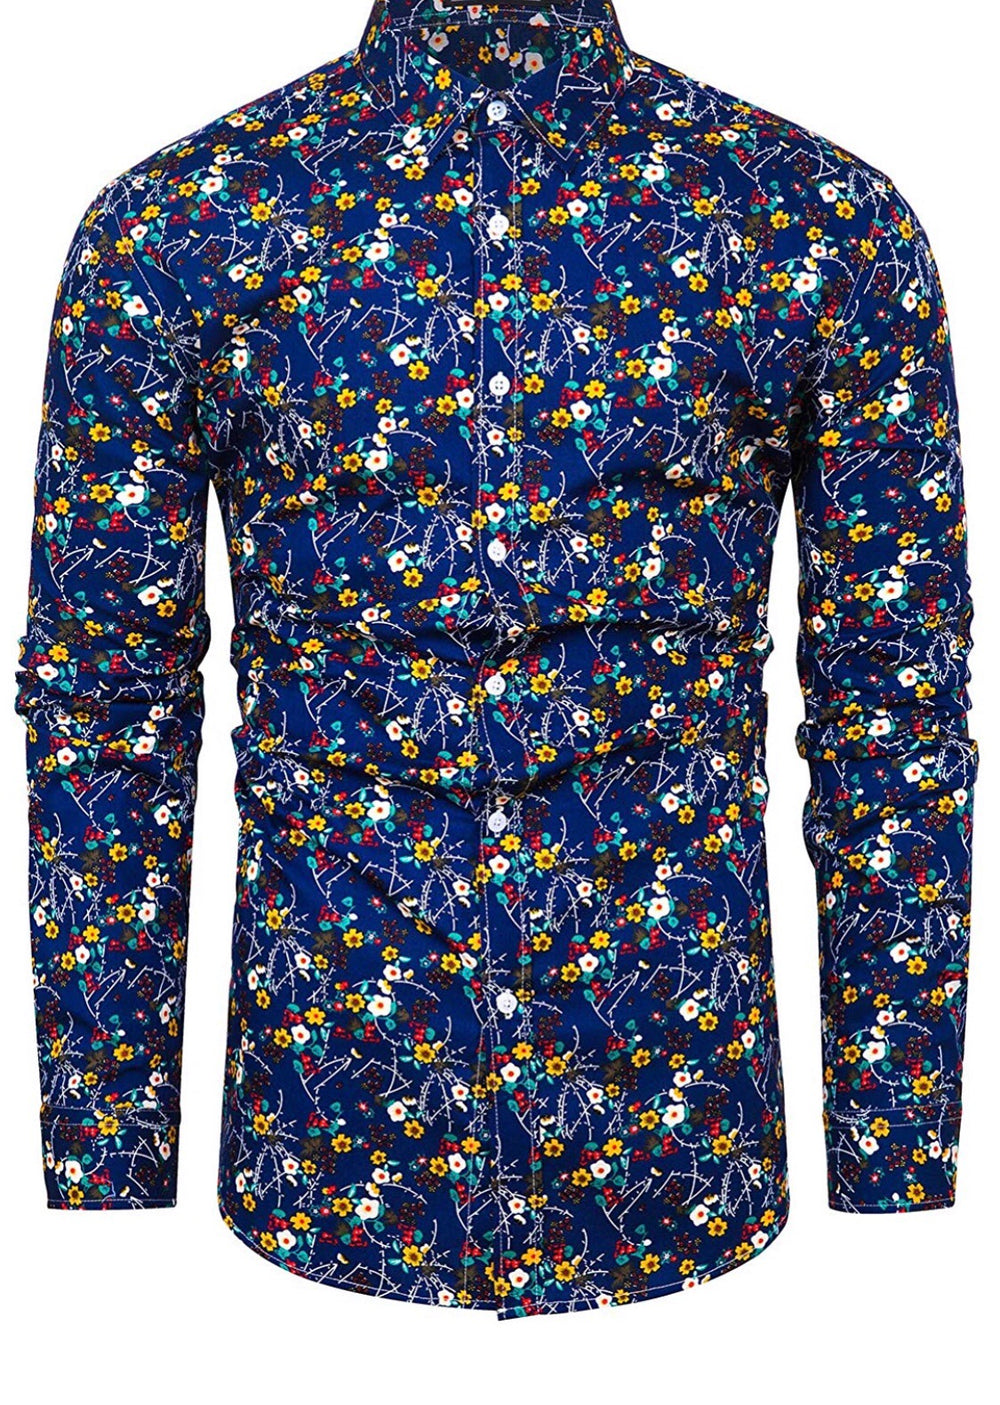 Blue prairie button up shirt